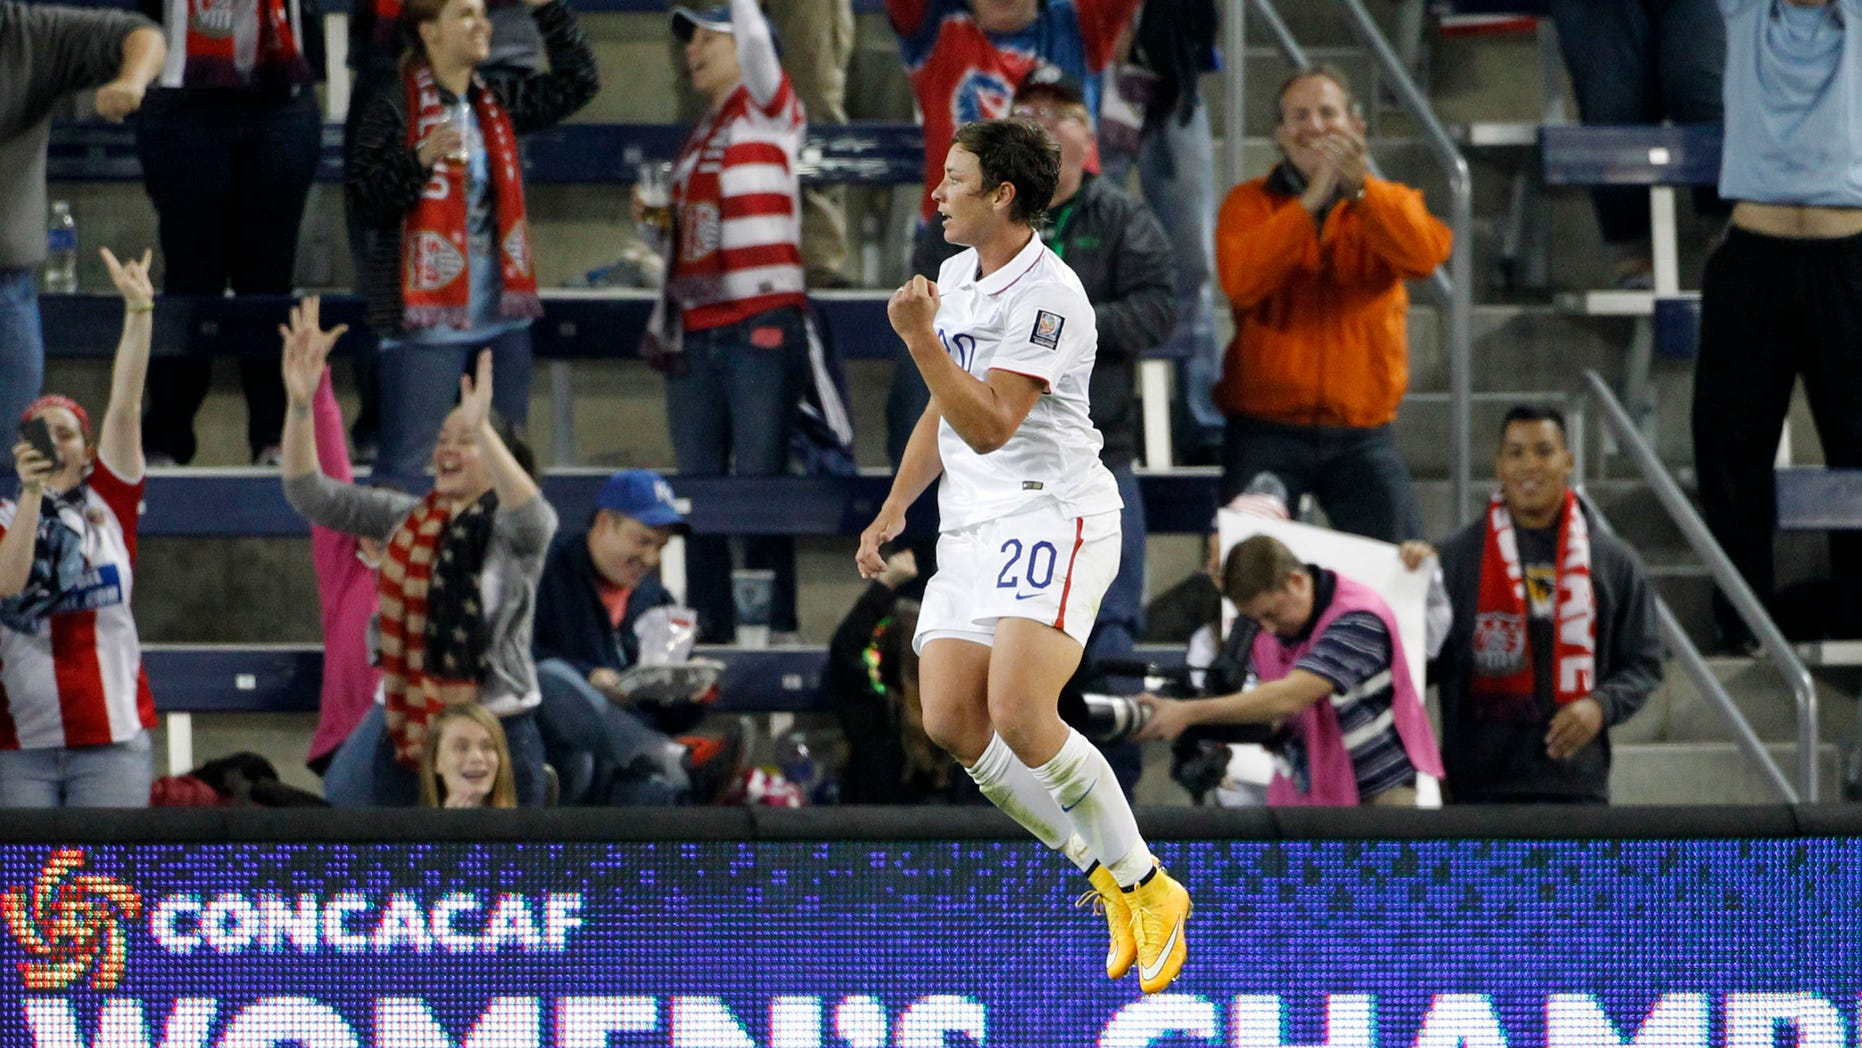 Abby Wambach celebrates her goal against Trinidad and Tobago in this Oct. 15, 2014, file photo.